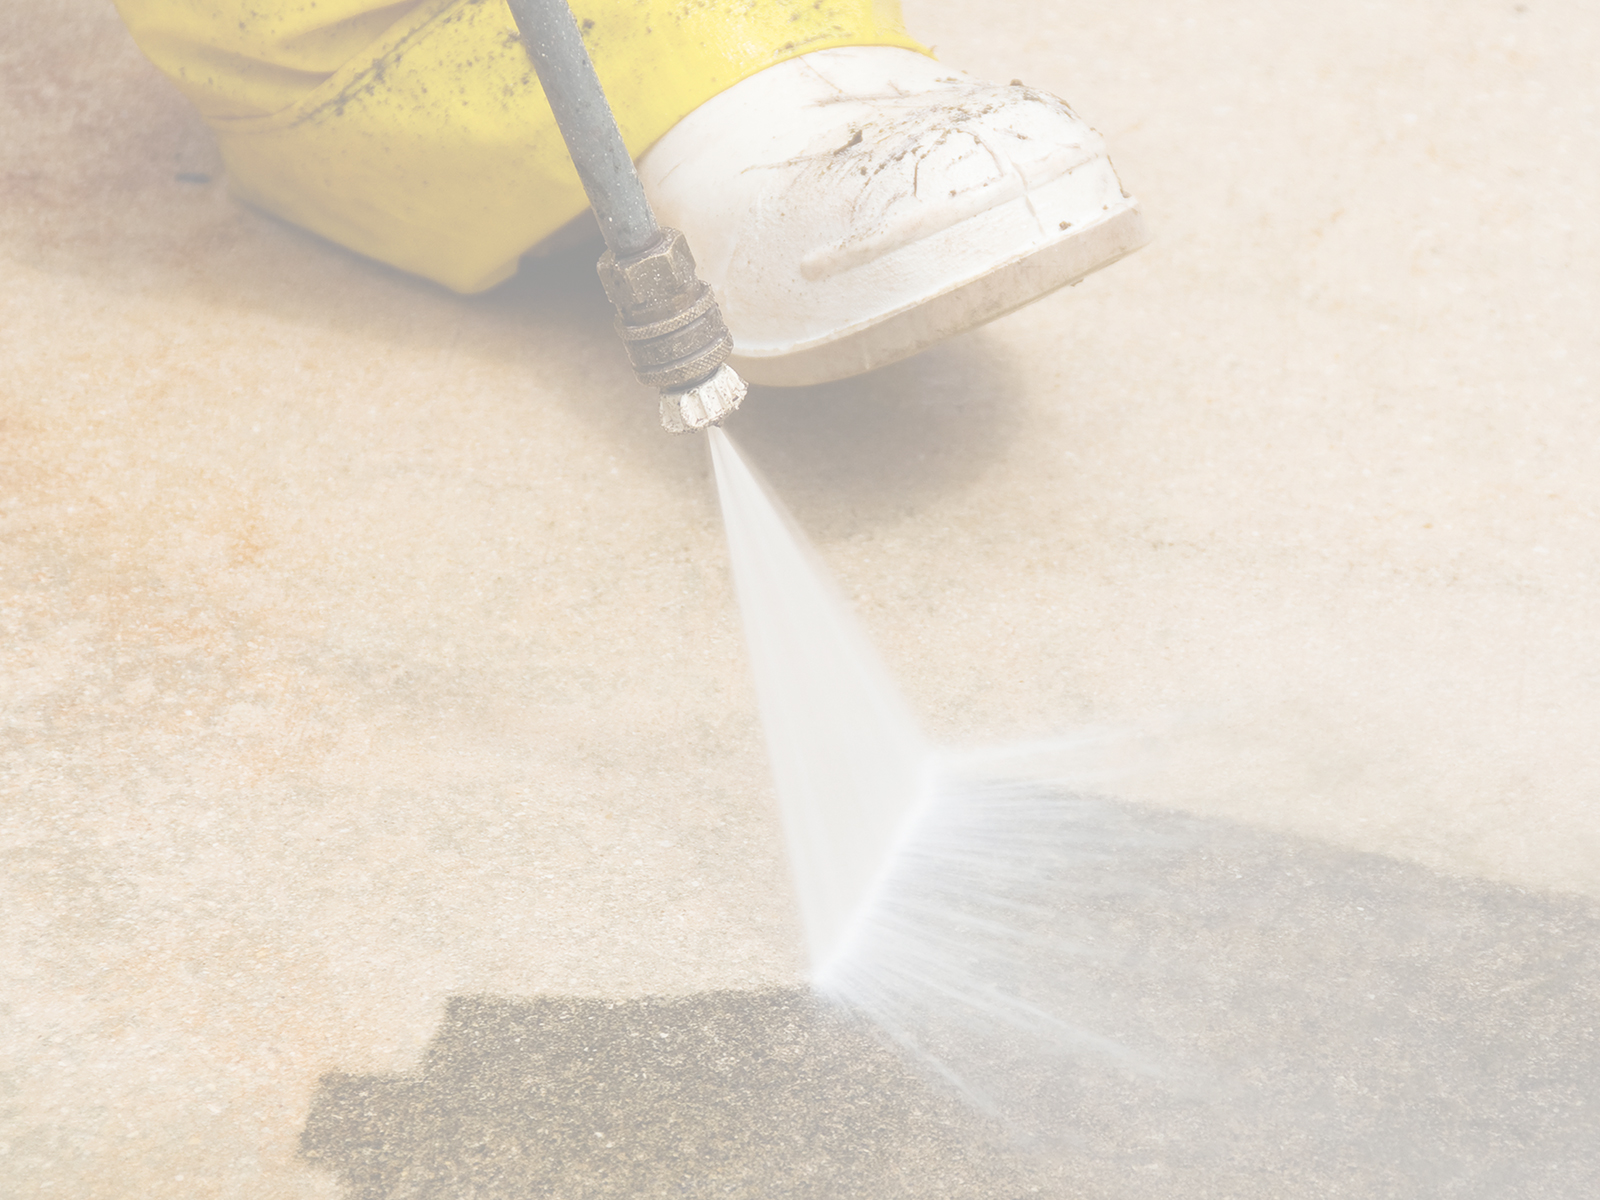 PRESSURE WASHING SERVICES IN RIVER PARK FLORIDA  - http://perfectpressurecleaning.com/pressure-washing-services-in-river-park-florida/